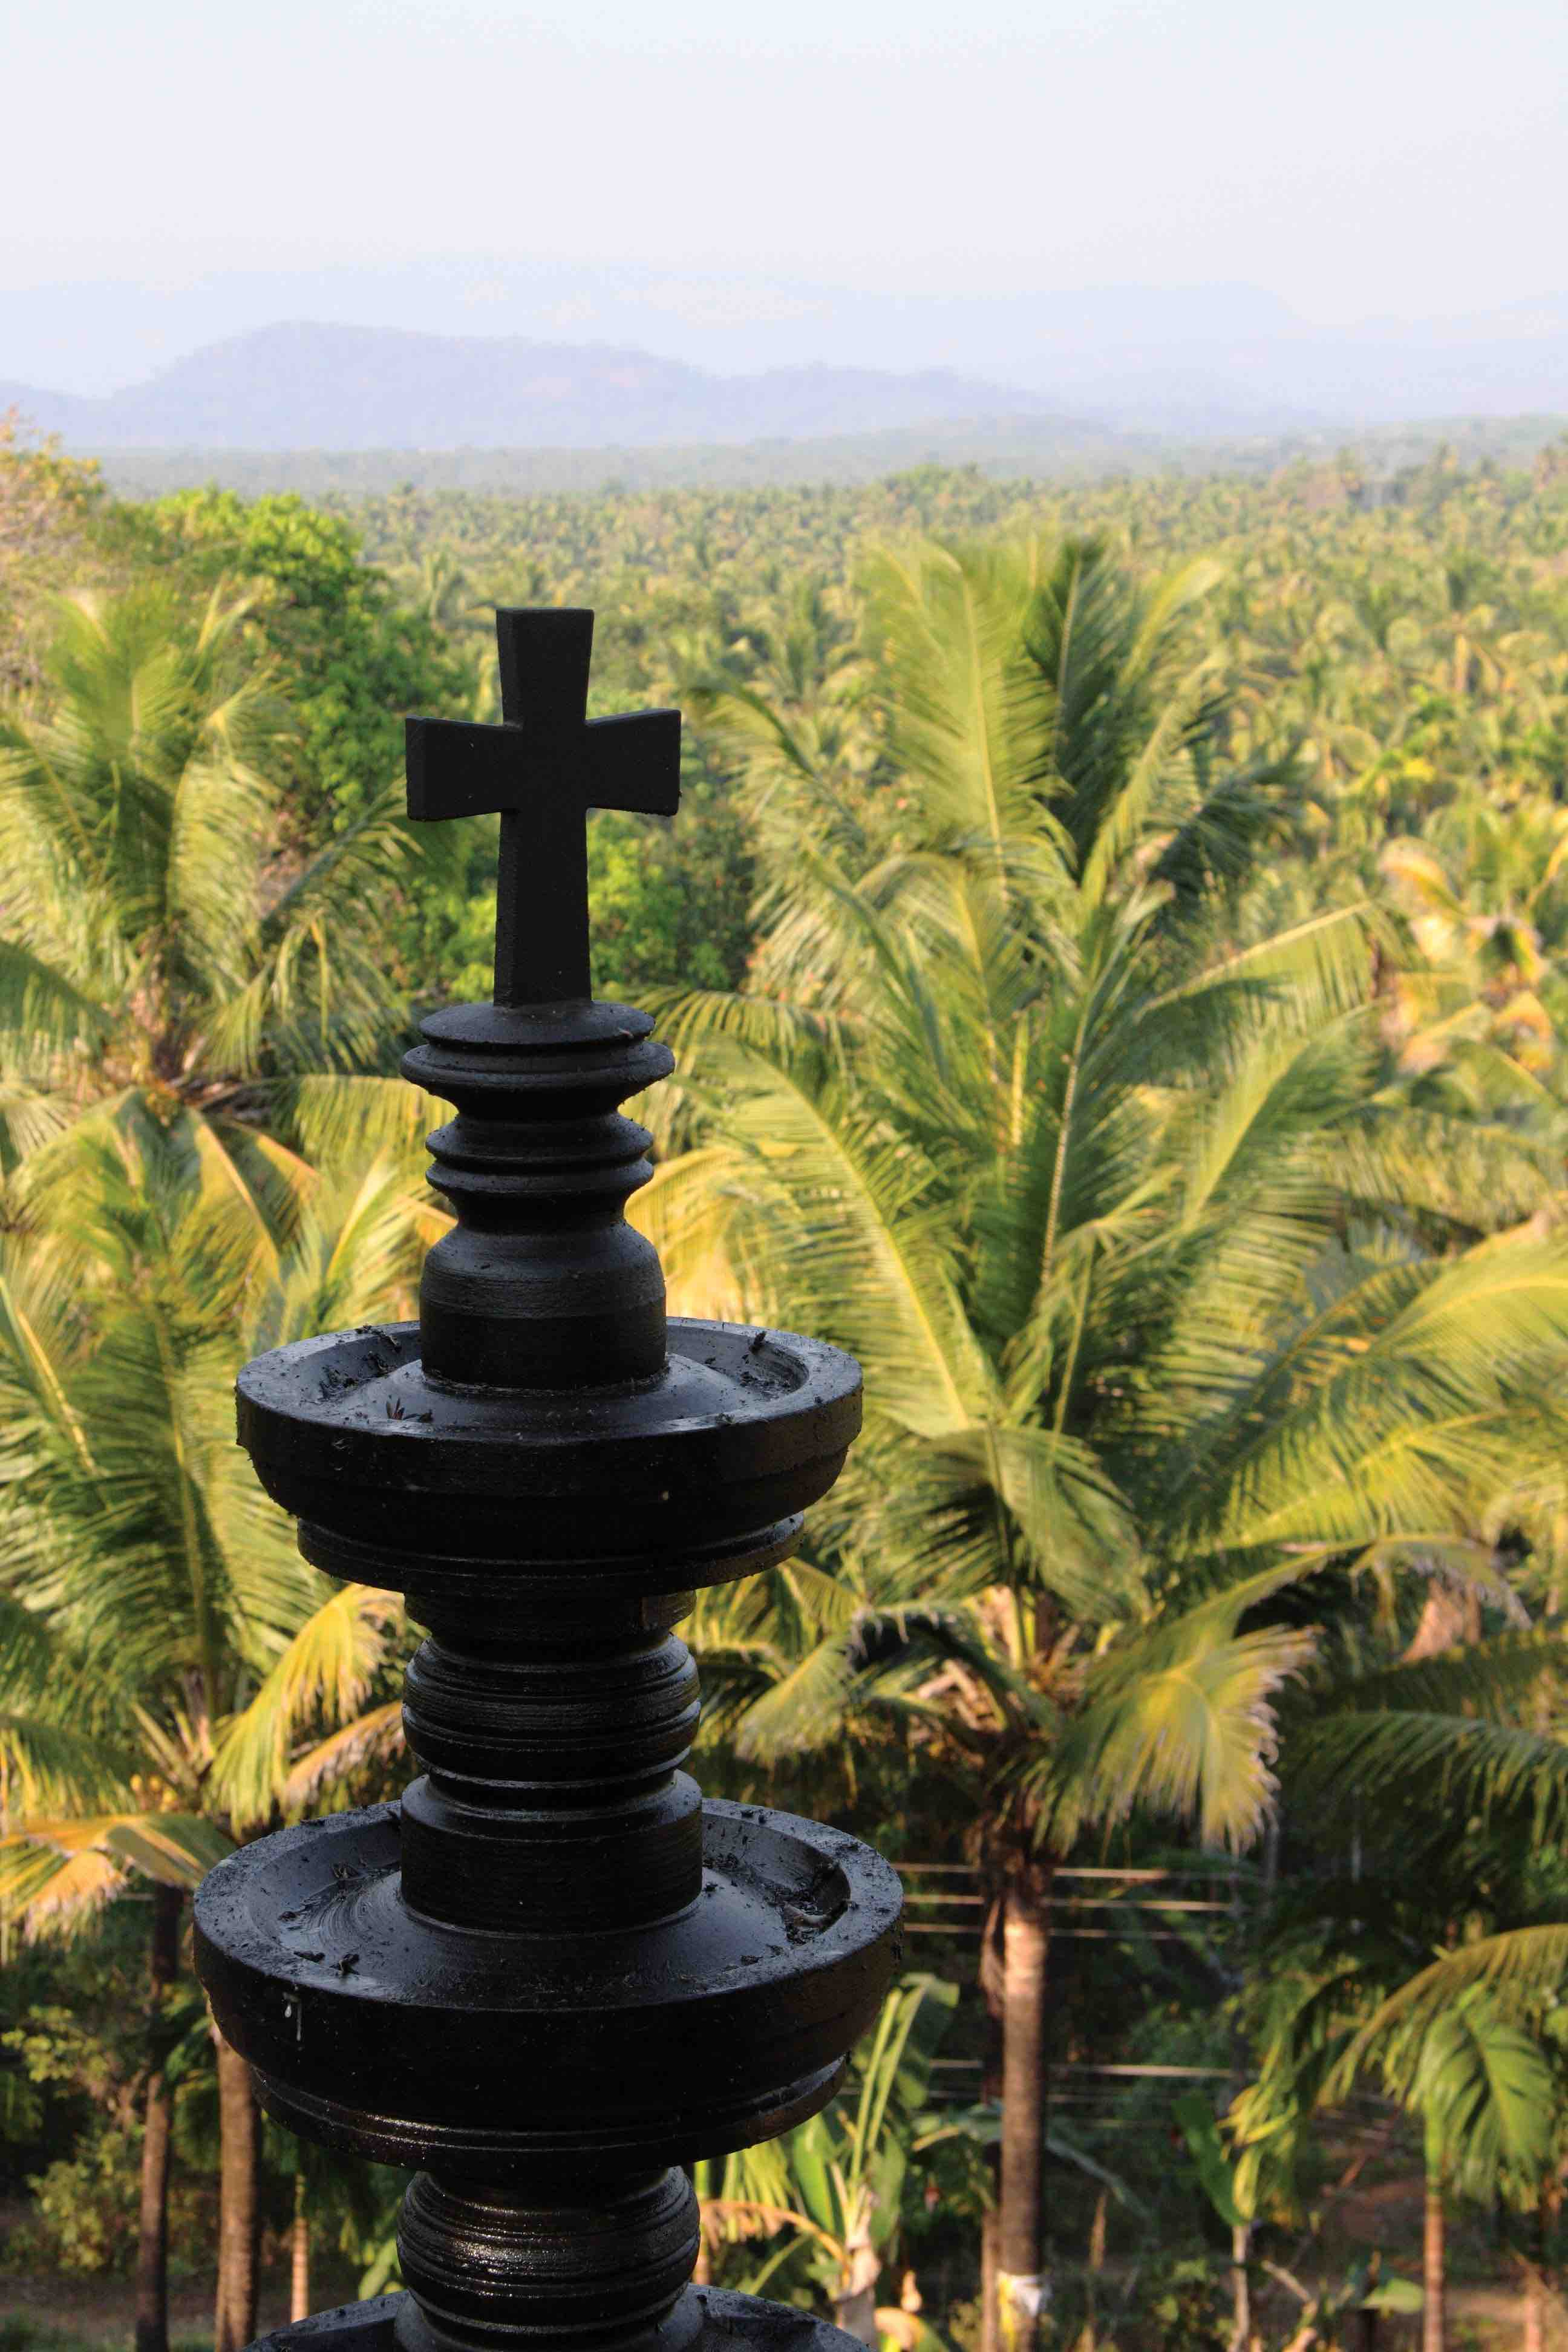 Traditional Indian stone oil lamp, topped with a cross, overlooks a coconut palm forest at the hill village of Pushpagiri